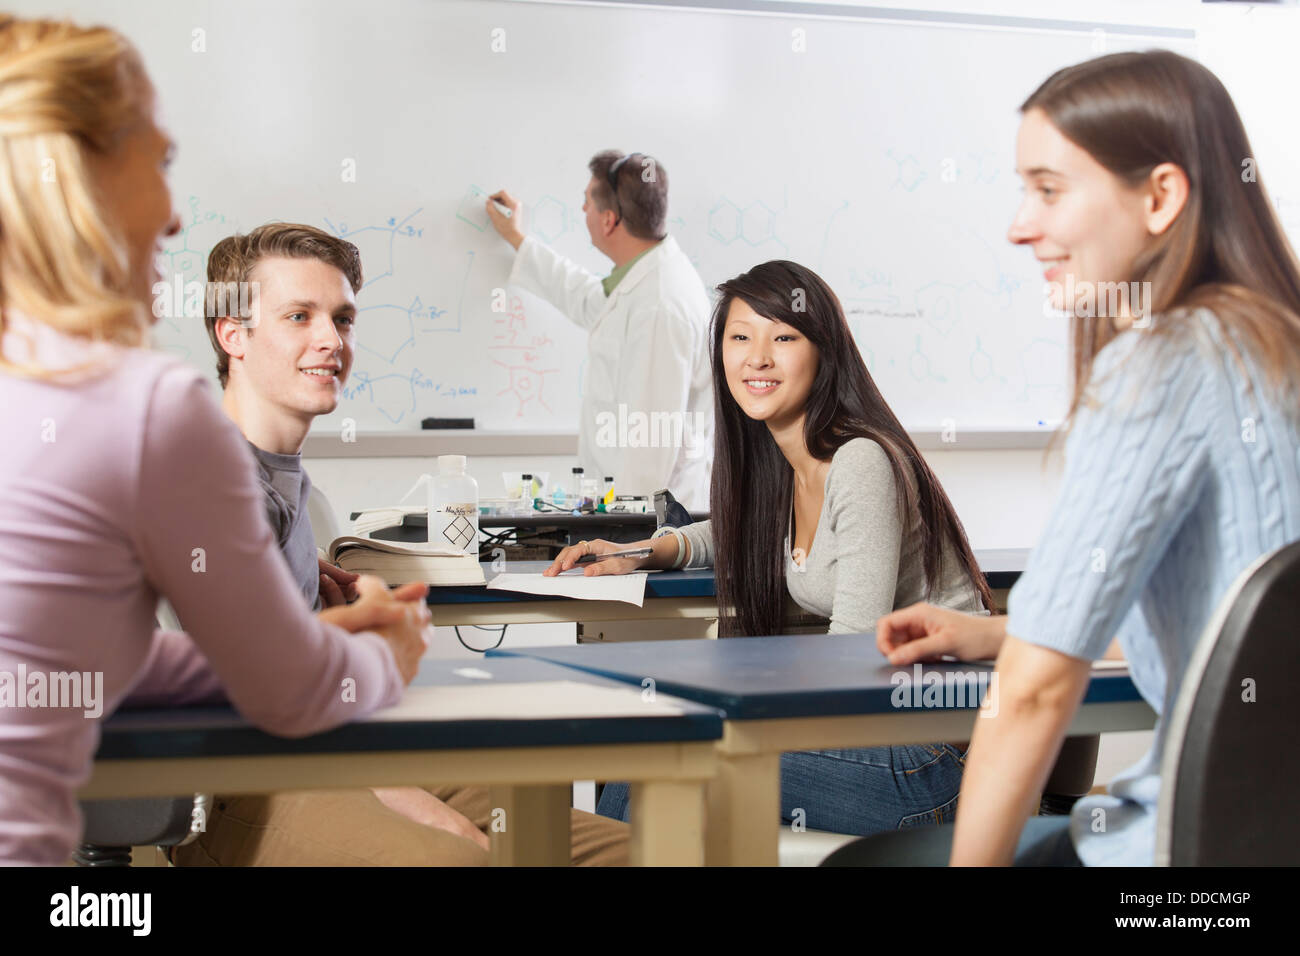 essay on talking in class For years, class has been a taboo topic here are some frequently asked questions to move past that taboo what do you mean by class class is a relative social rank in terms of income, wealth, education, status/position, and/or power.